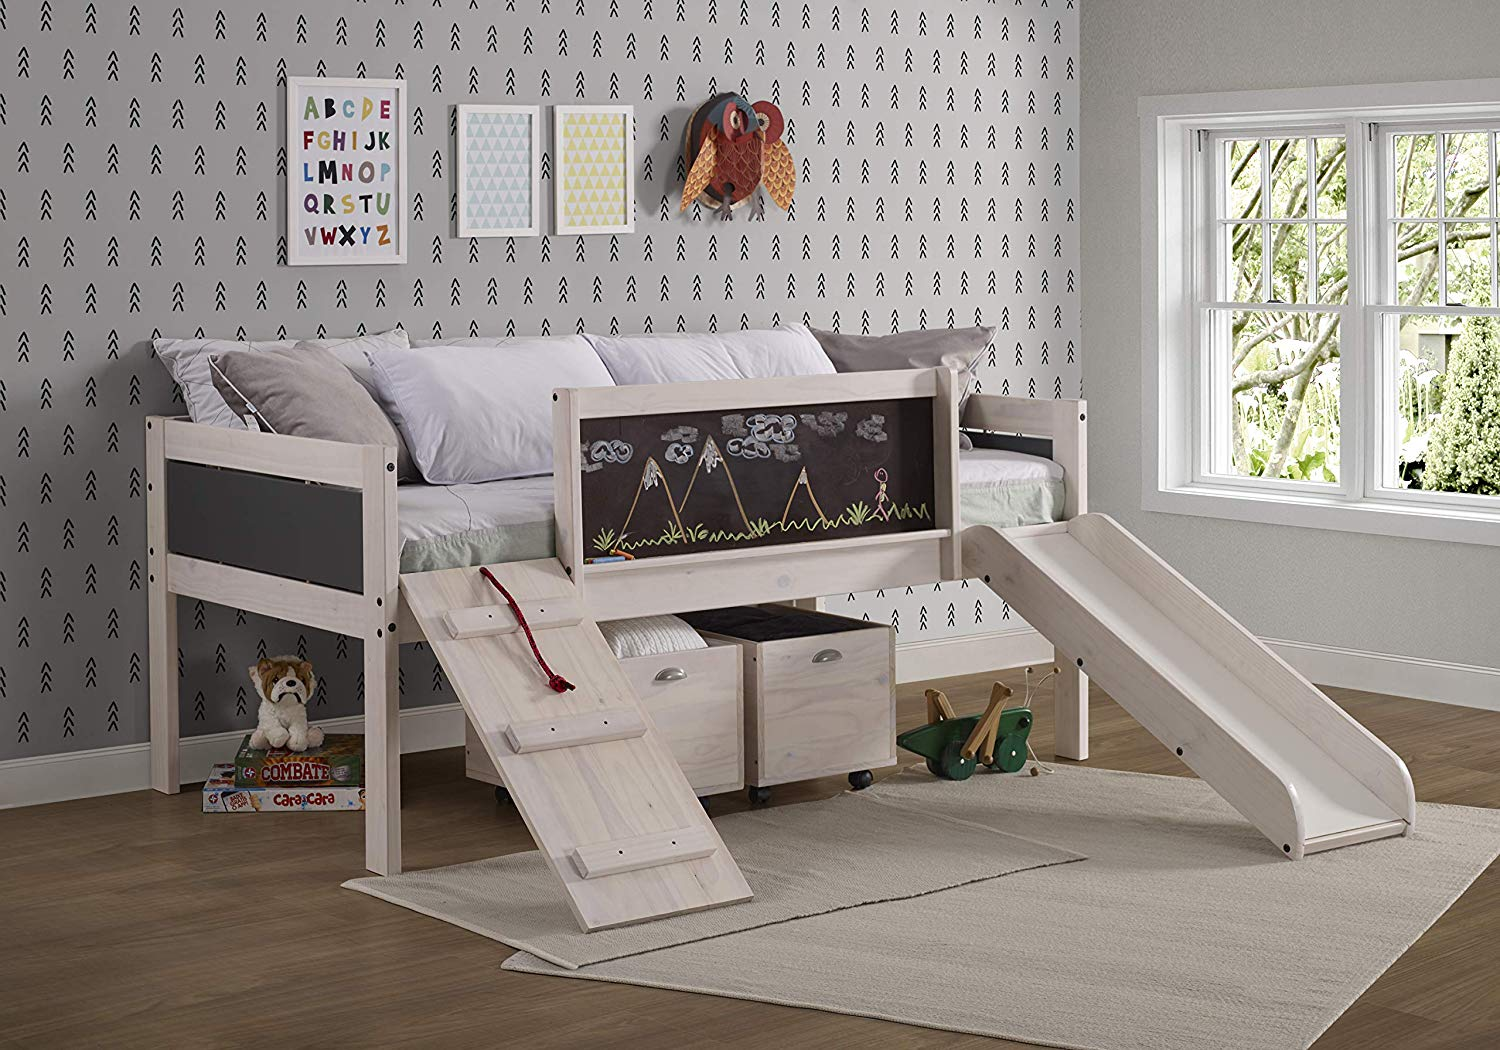 Twin Art Play Bed